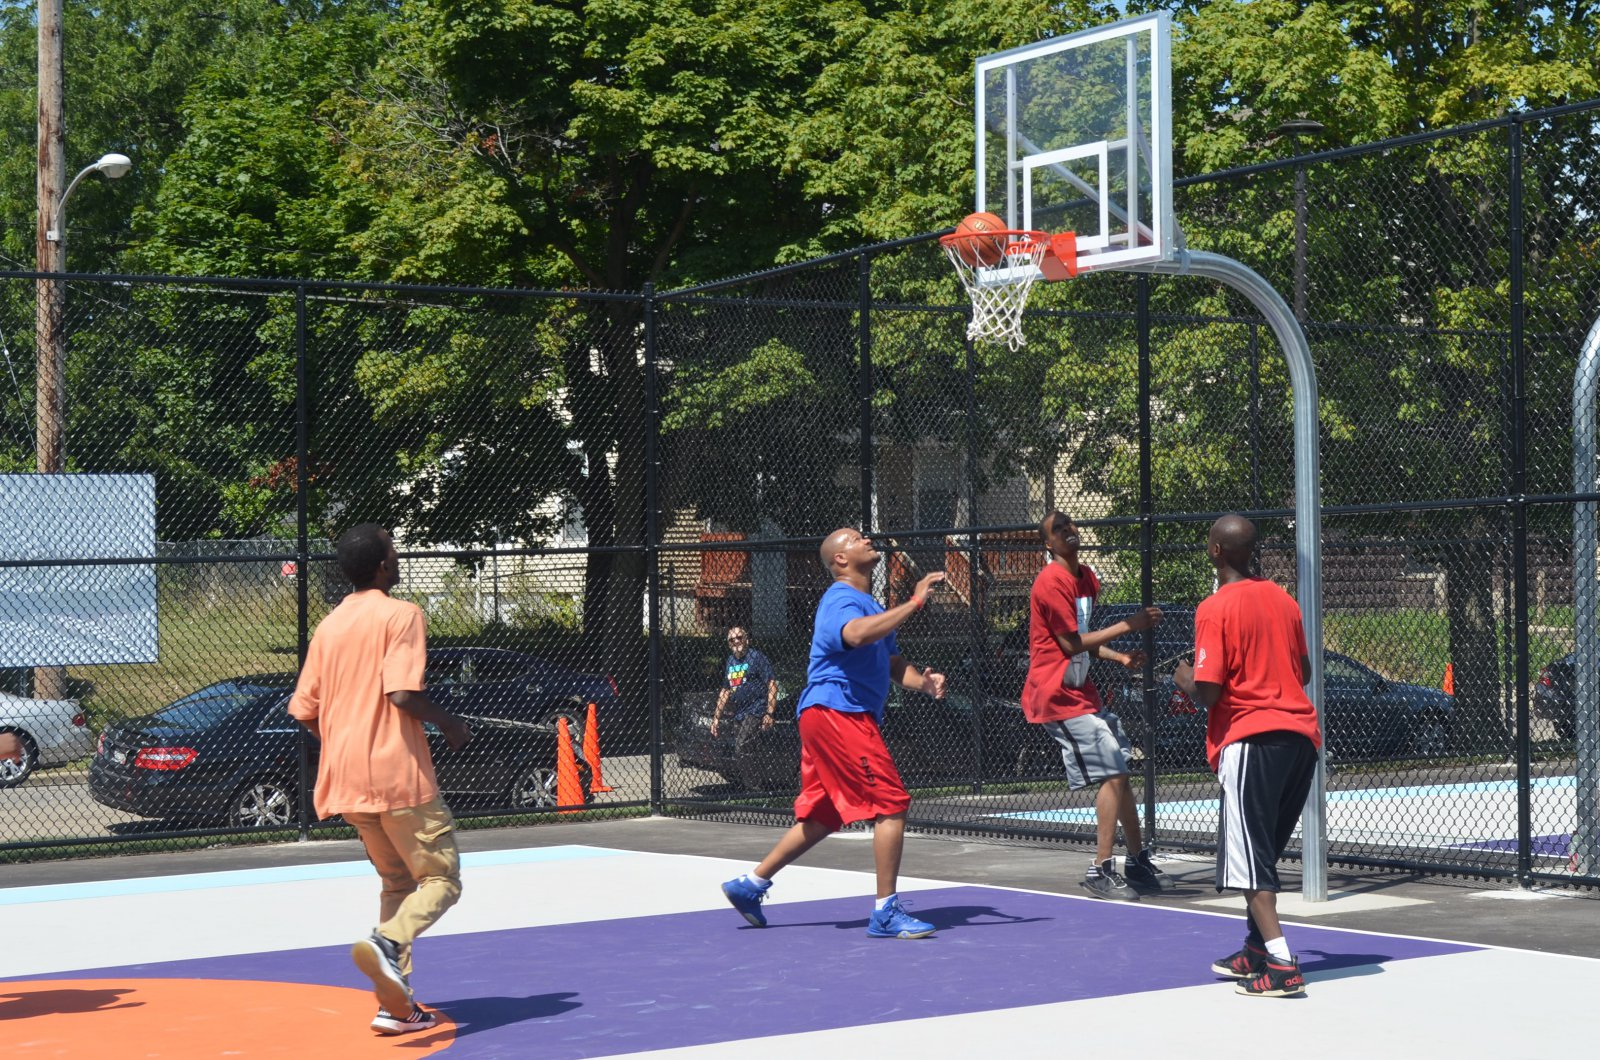 Basketball at Columbia Playfield on the day of its reopening